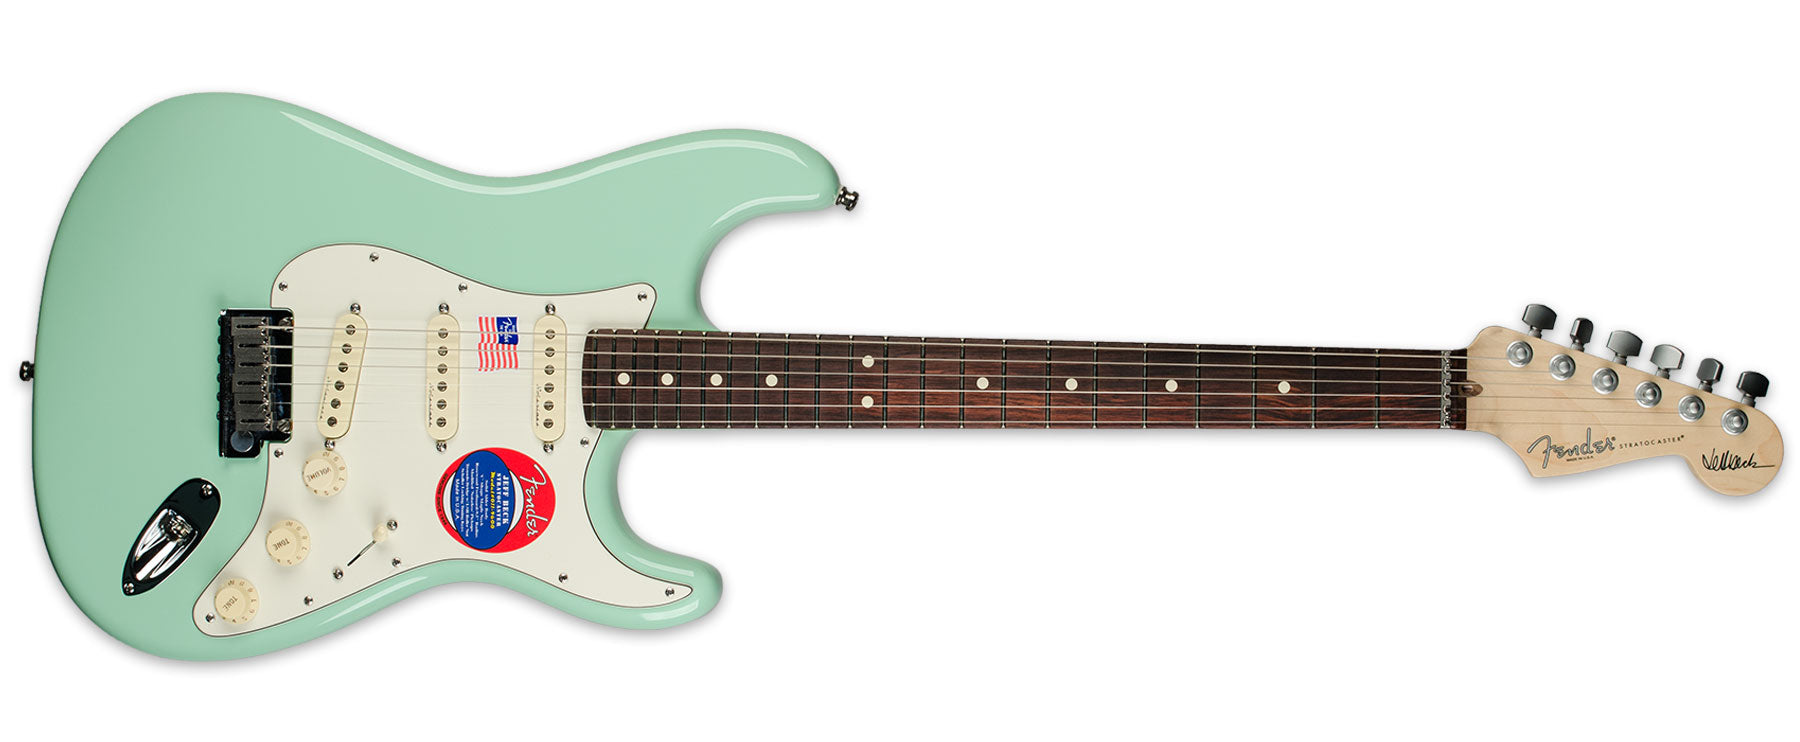 FENDER JEFF BECK SIGNATURE STRATOCASTER SEAFOAM GREEN